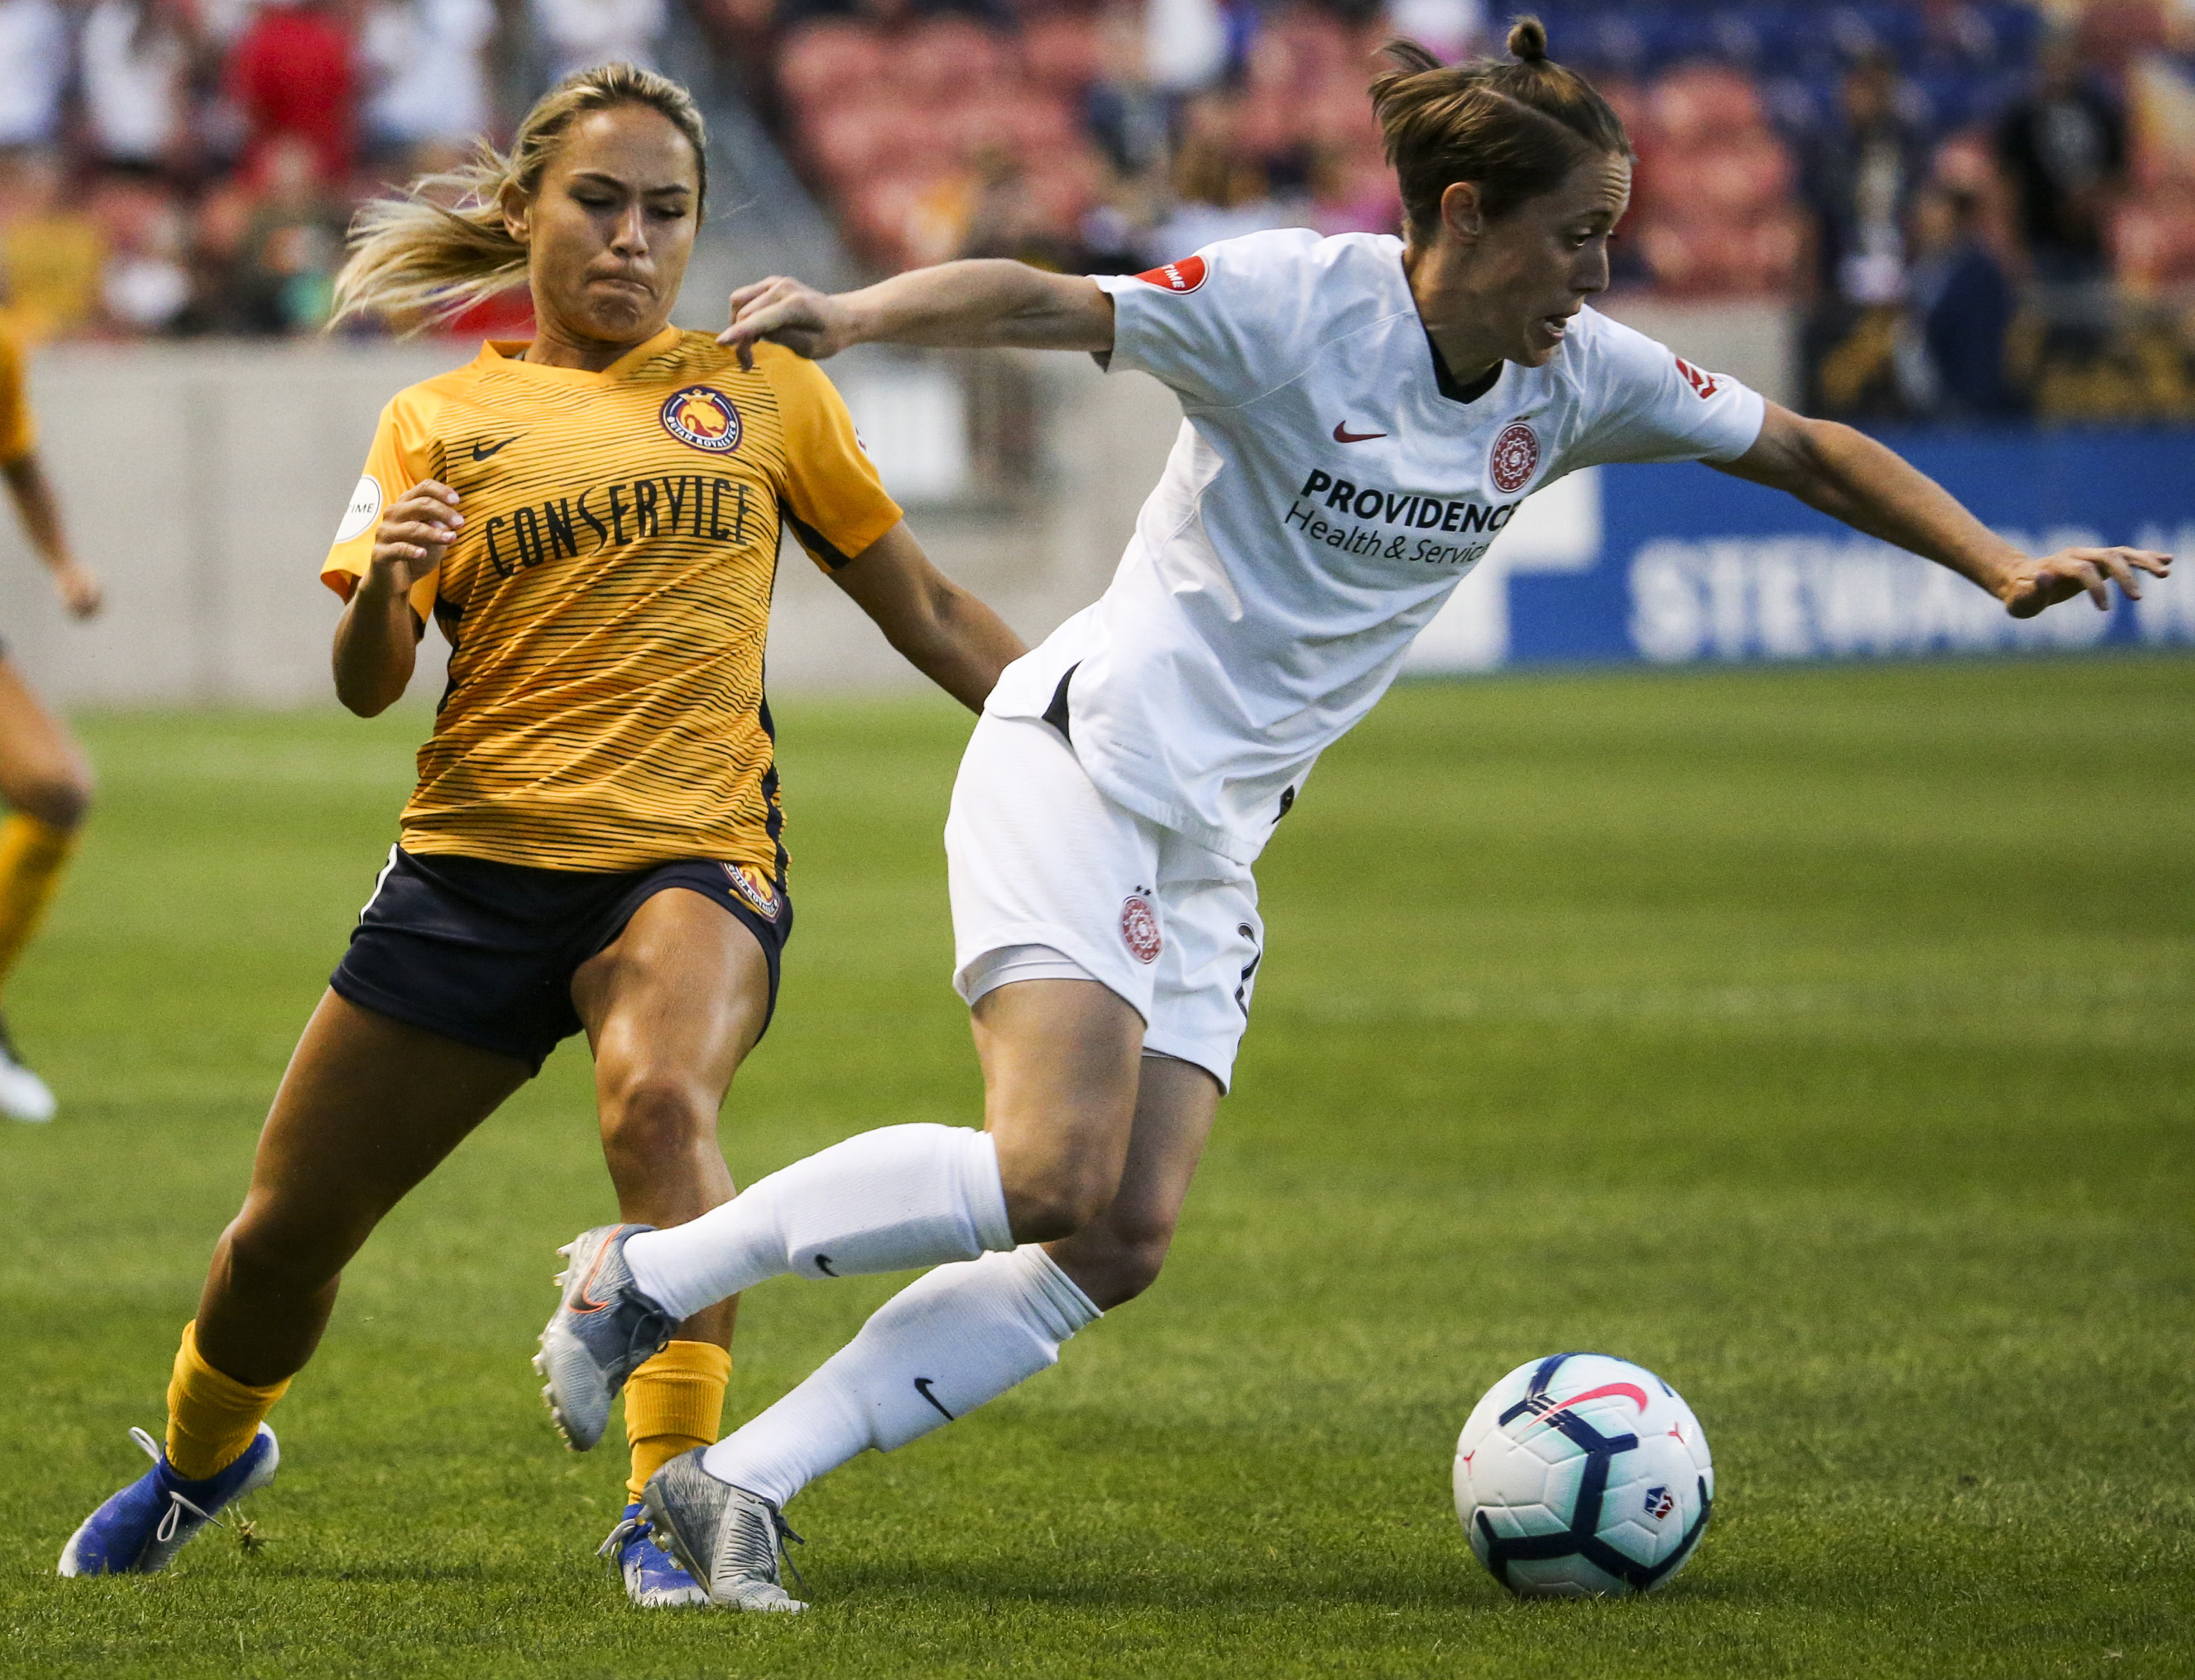 Portland Thorns FC defender Meghan Klingenberg (25) is tripped by Utah Royals FC midfielder Lo'eau LaBonta (9) during the first half of a National Womens Soccer League game at Rio Tinto Stadium in Sandy on Friday, Sept. 6, 2019.